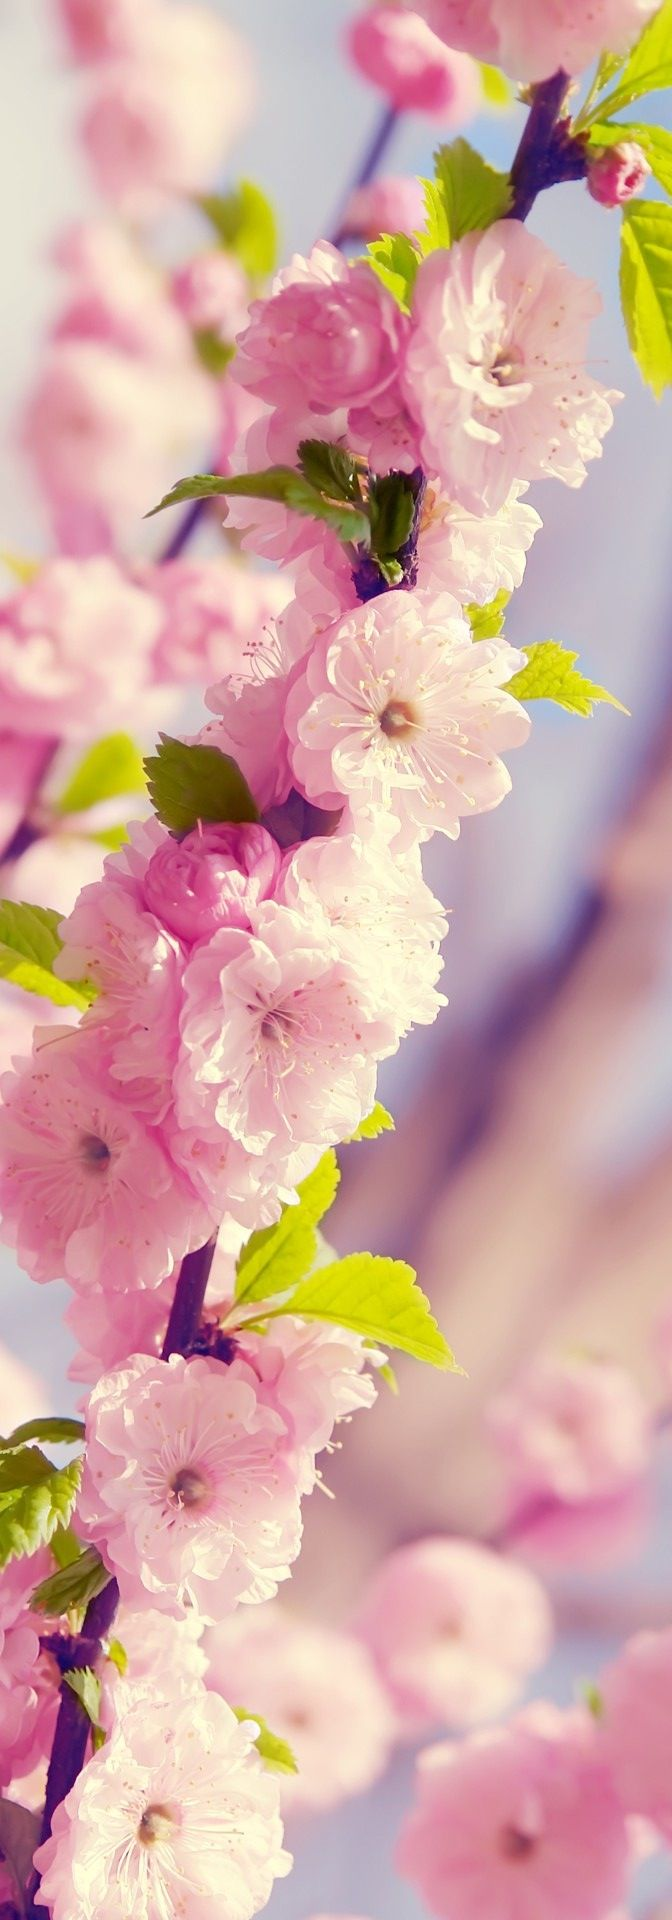 Beautiful pink blossoms • orig. source not found - #plants #flowers #spring…